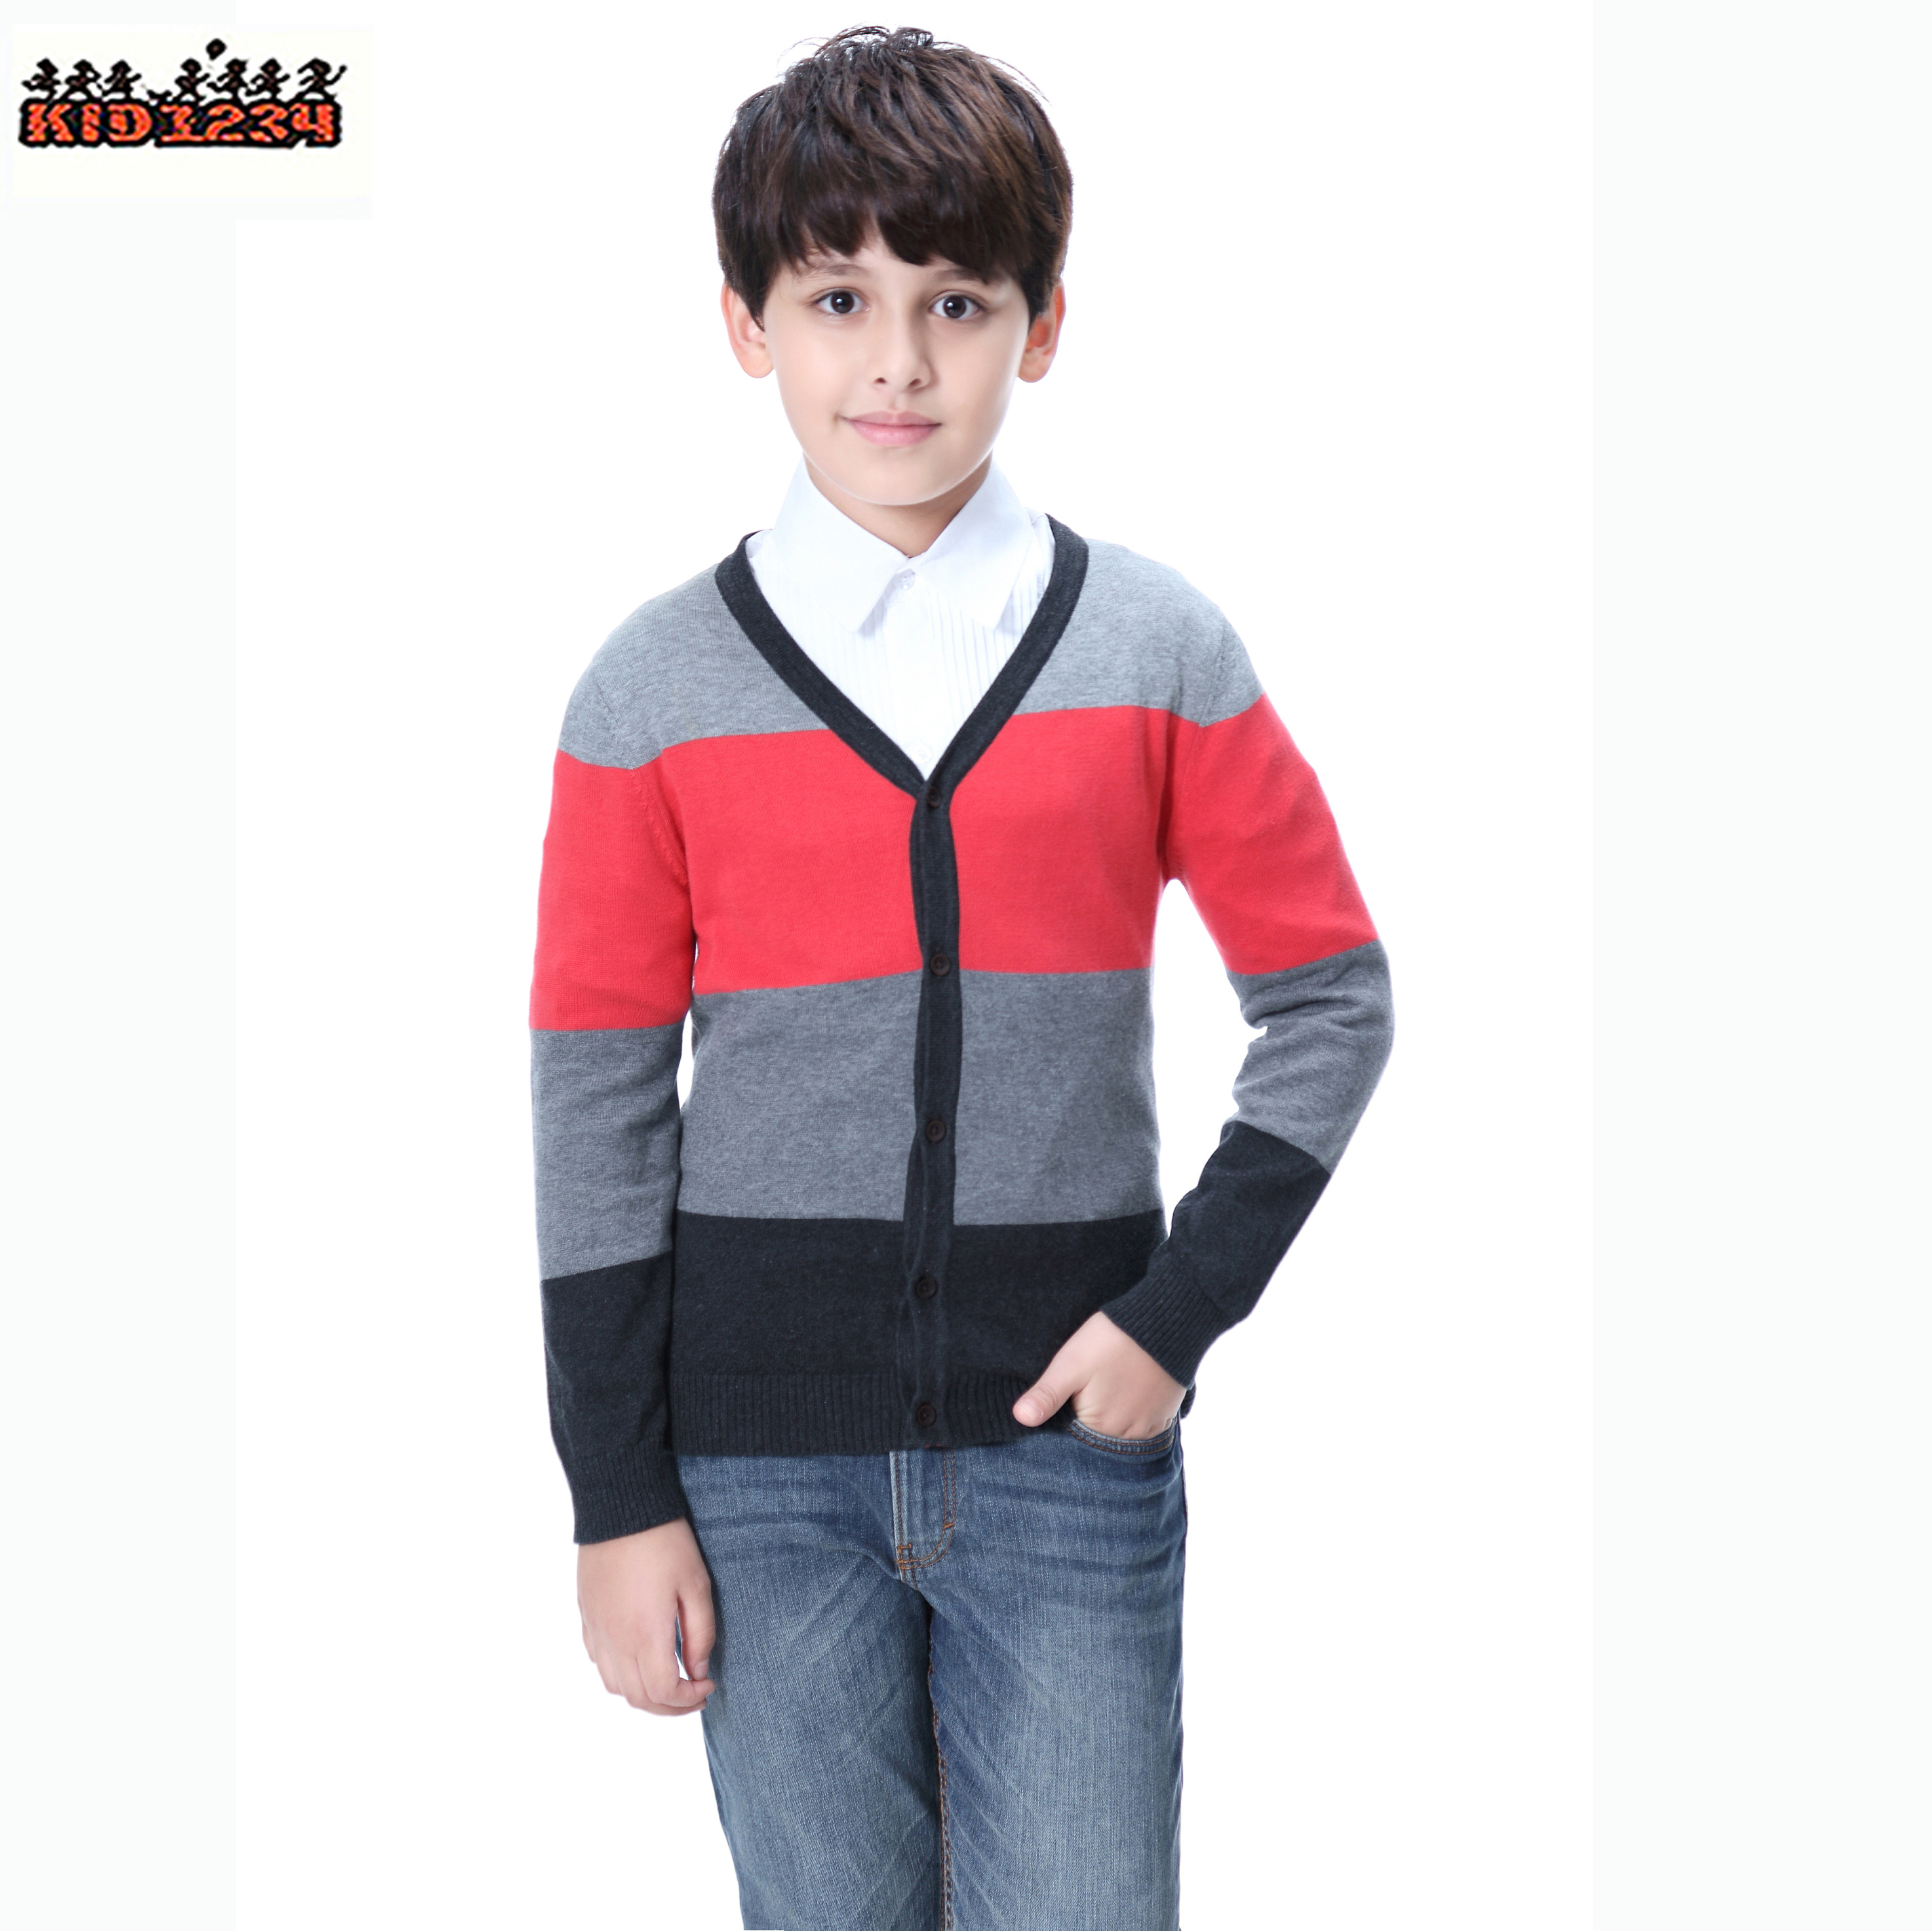 Anti-Pilling Eco-friengly Jungen Kids Cardigan Sweater Kinder gestrickter V-Ausschnitt aus Kaschmirmantel für den Winter im Frühling 4-14 Jahre